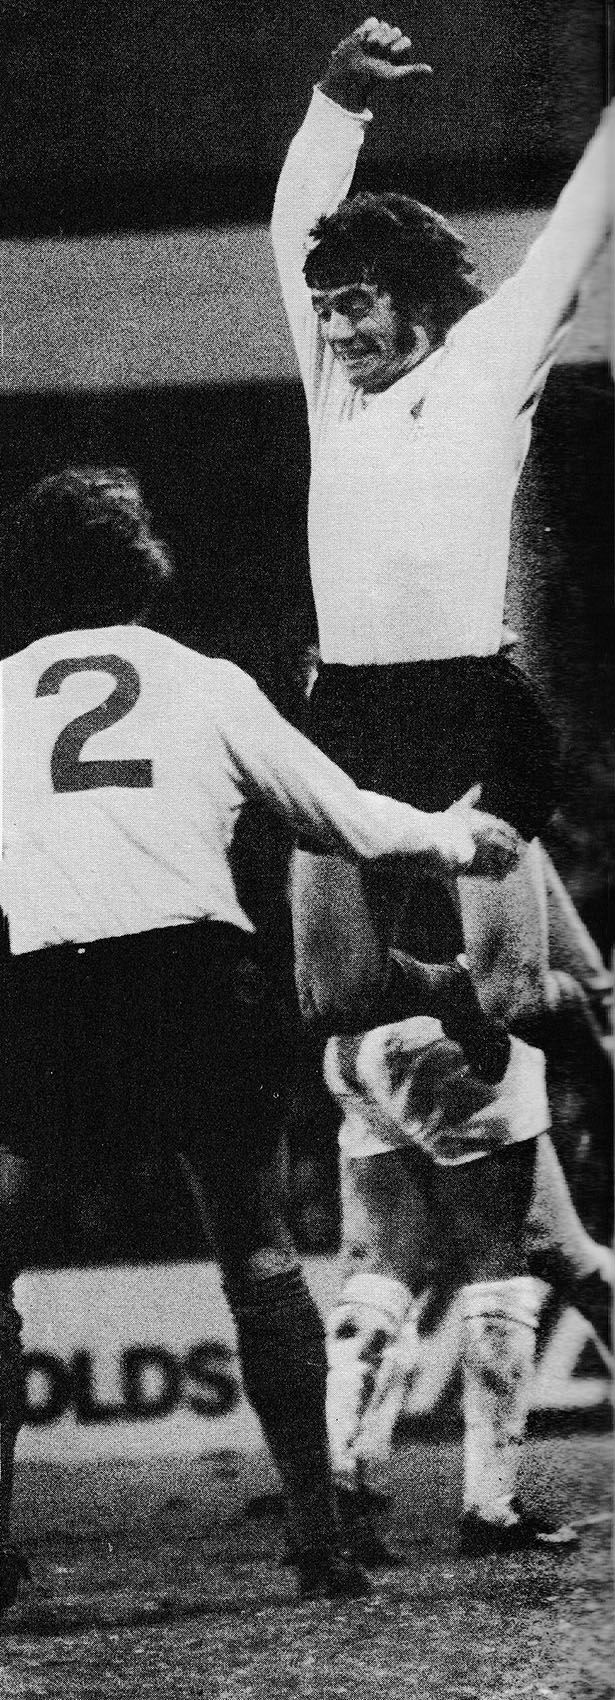 6th January 1973. Liverpool goal scorer Kevin Keegan celebrates with Chris Lawler after the hit and run victory over West Ham United, at Upton Park.